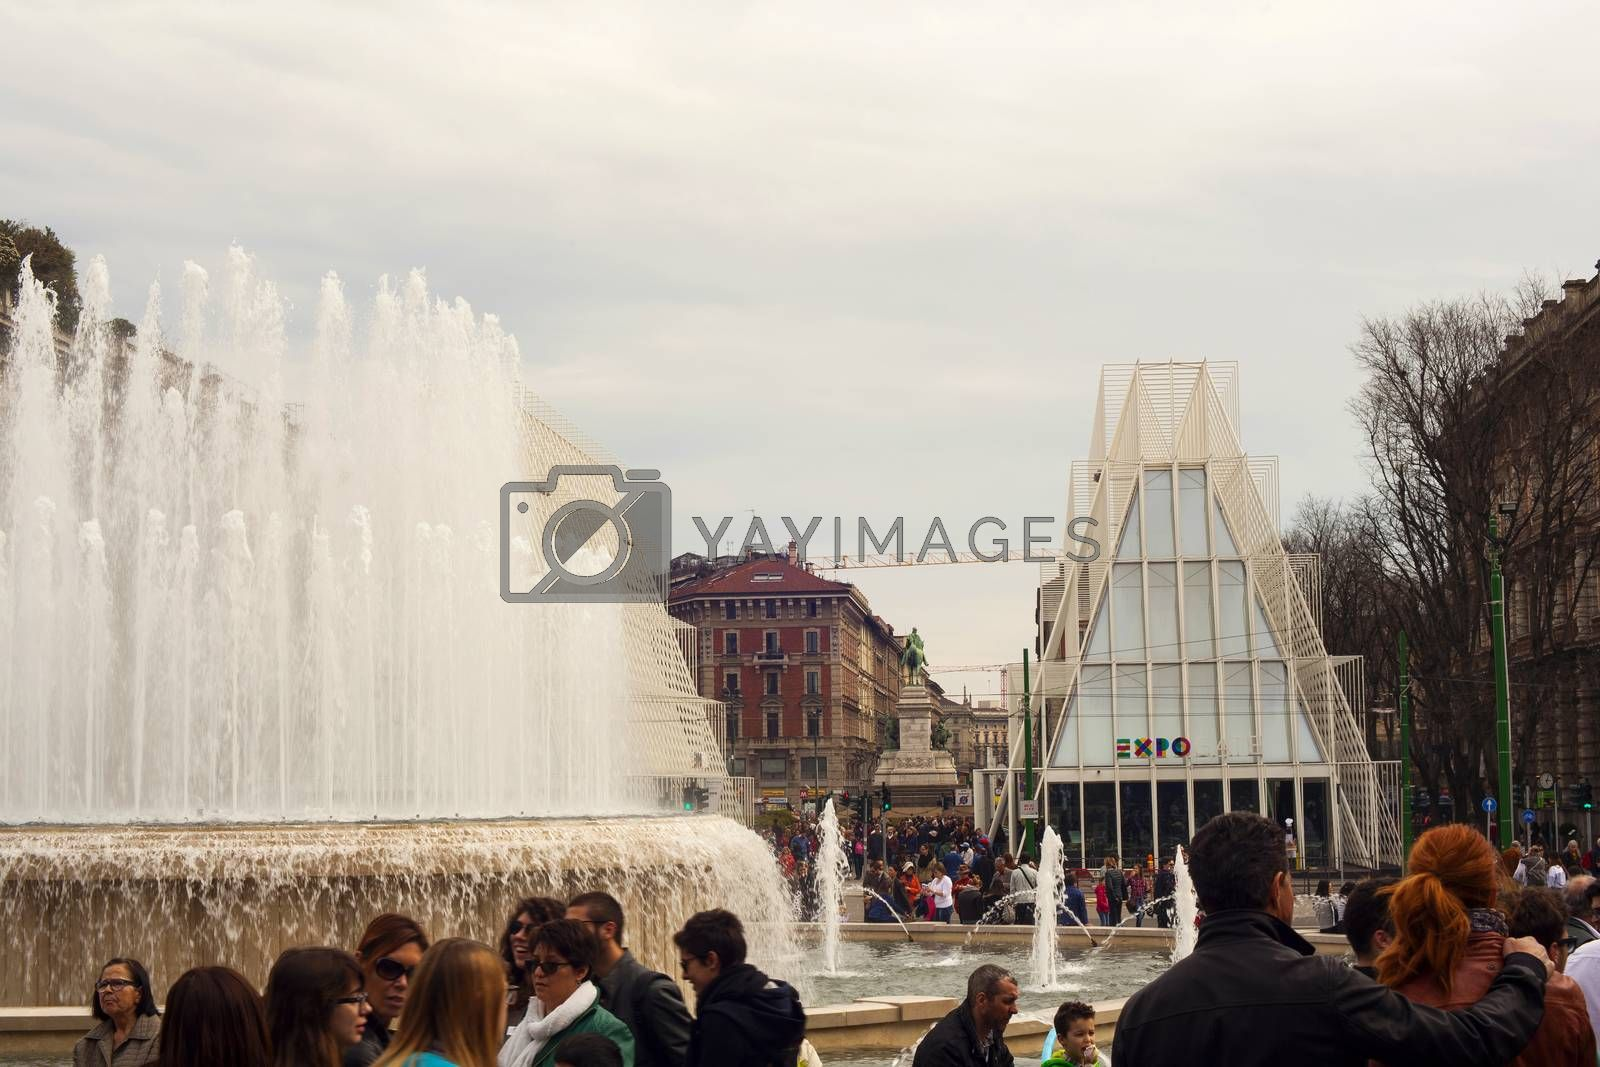 Milan Expo by bepsimage